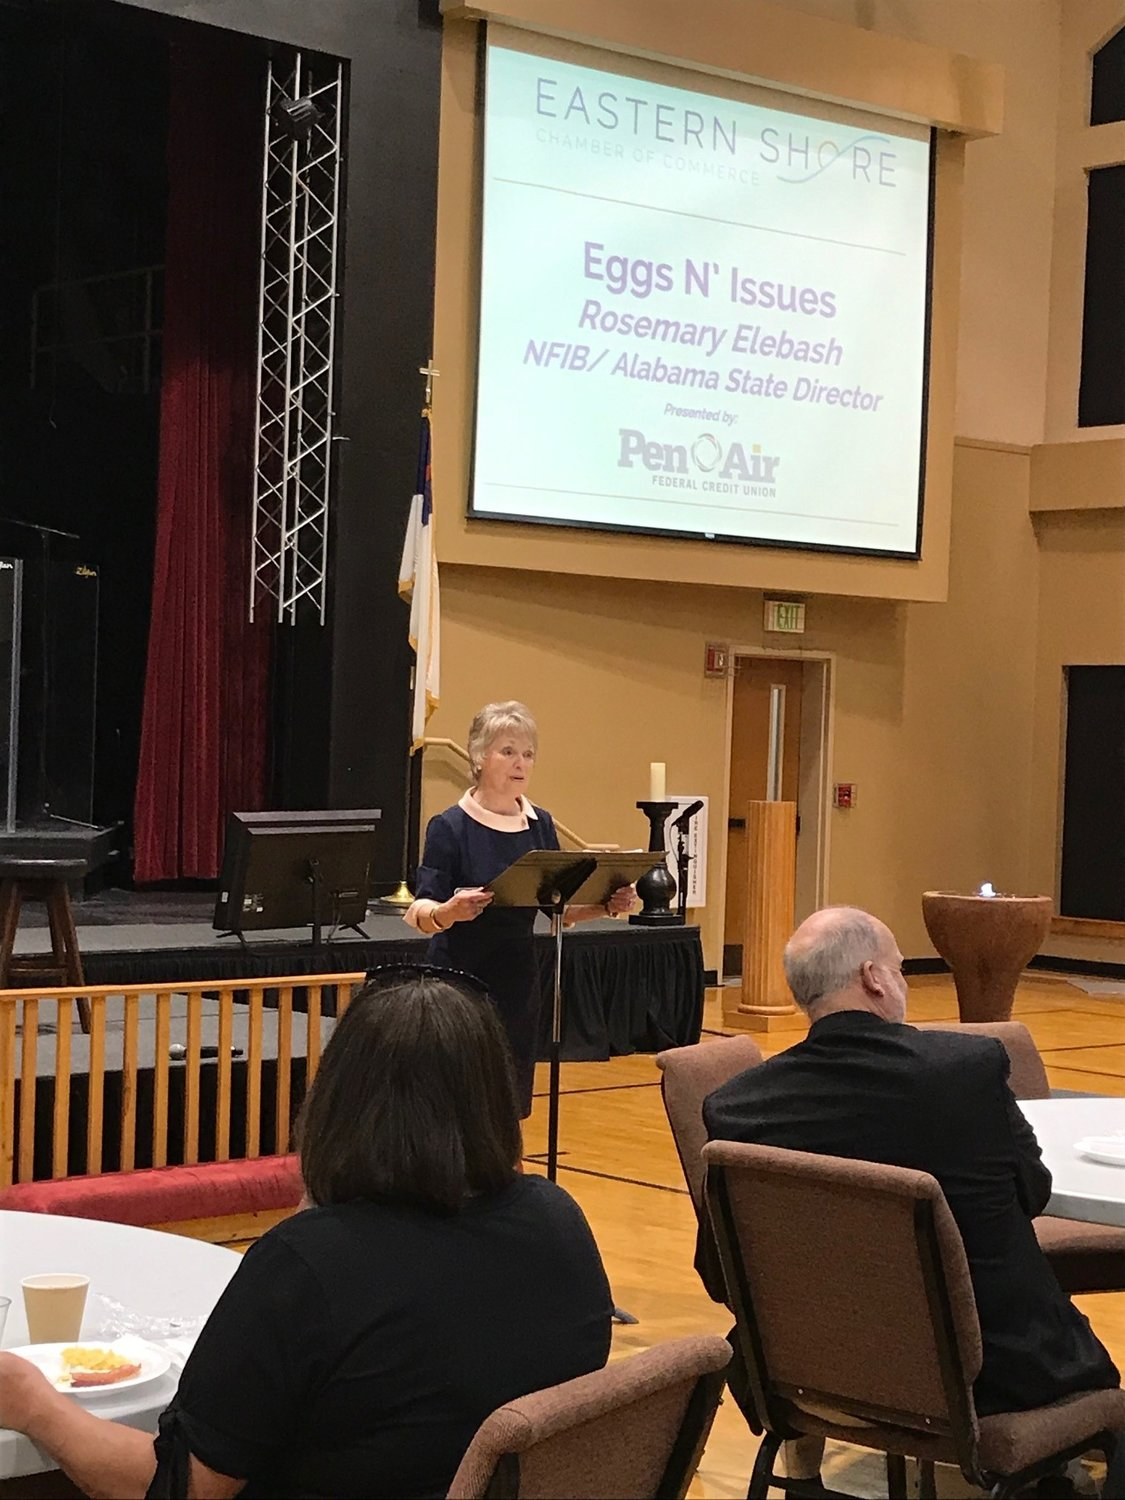 Rosemary Elebash, Alabama director of the National Federation of Independent Businesses, addresses the March Eggs and Issues meeting of the Eastern Shore Chamber of Commerce.